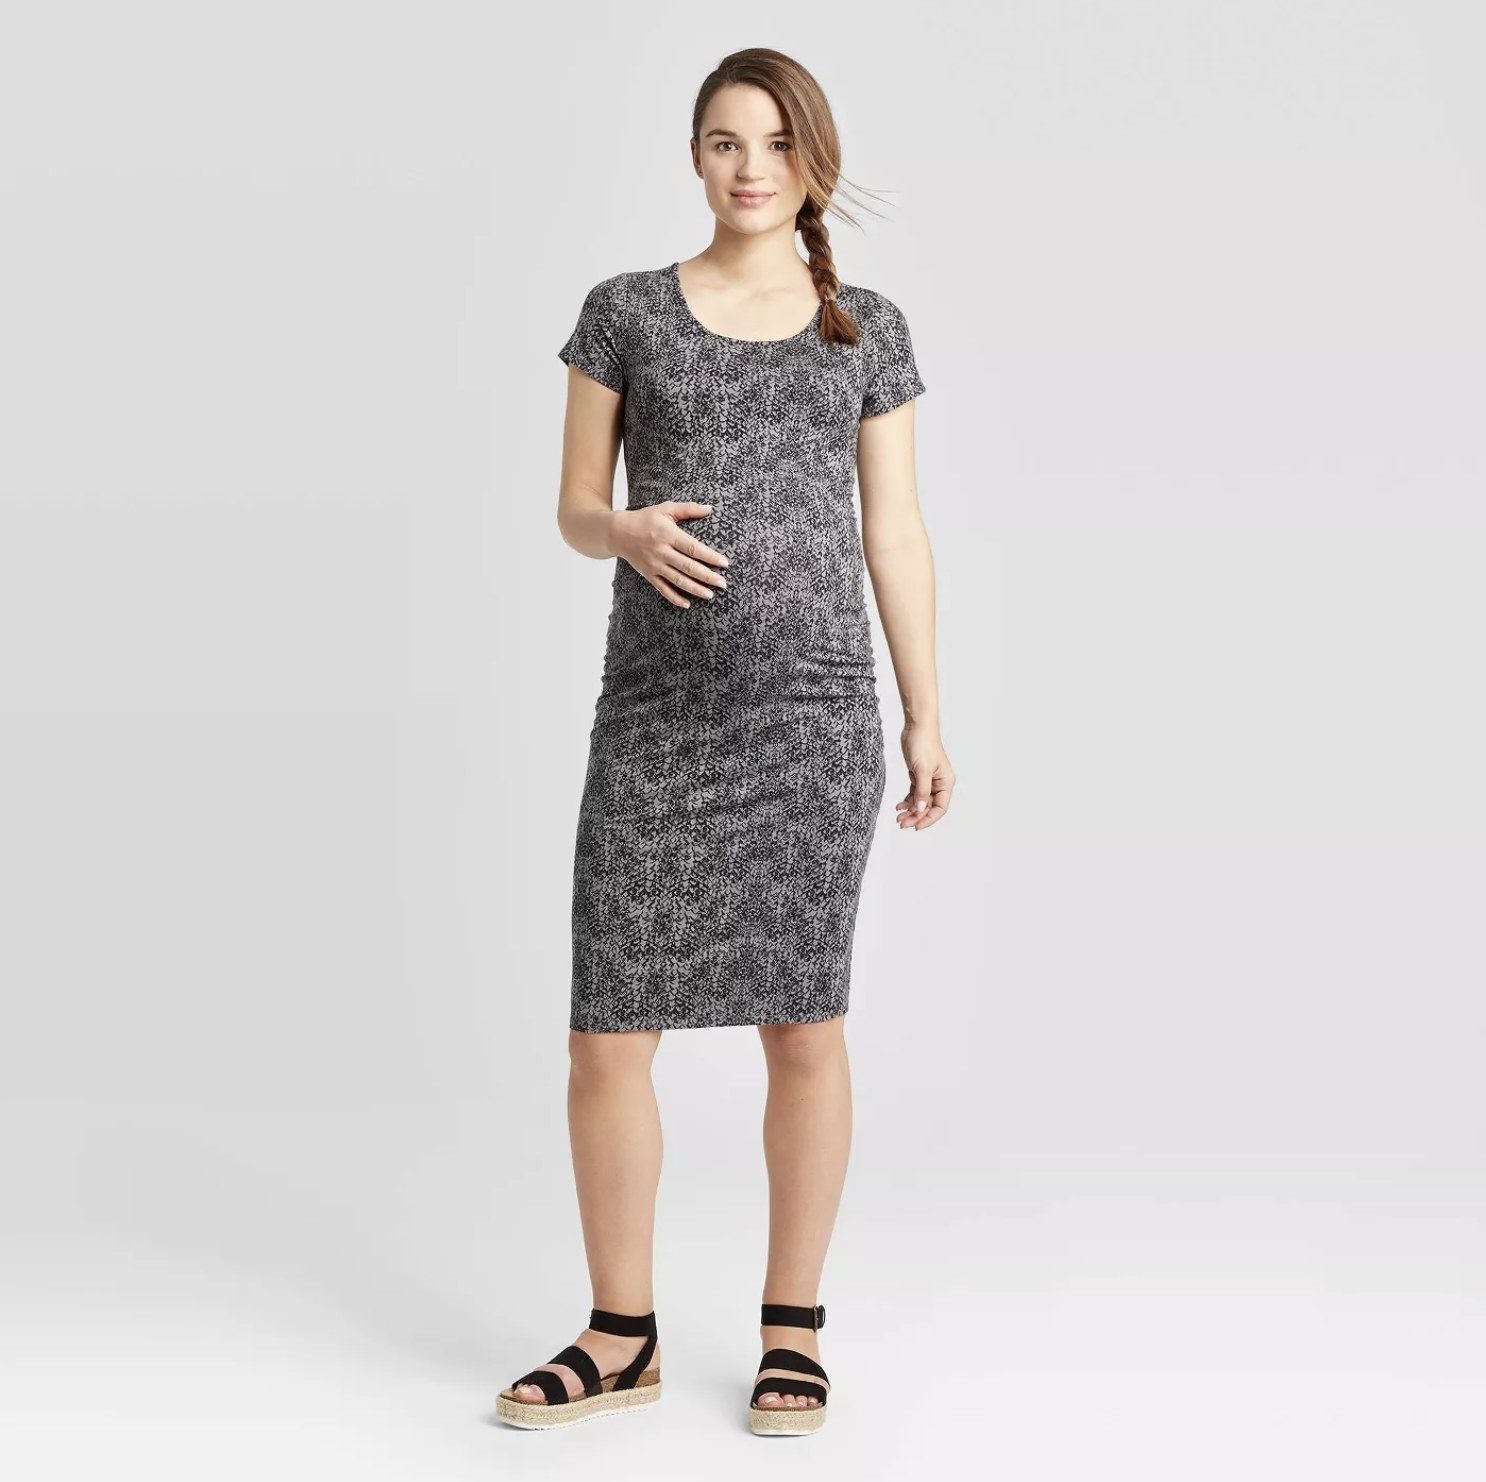 Model is wearing a black and grey snakeskin detail short sleeve maxi dress with sandals